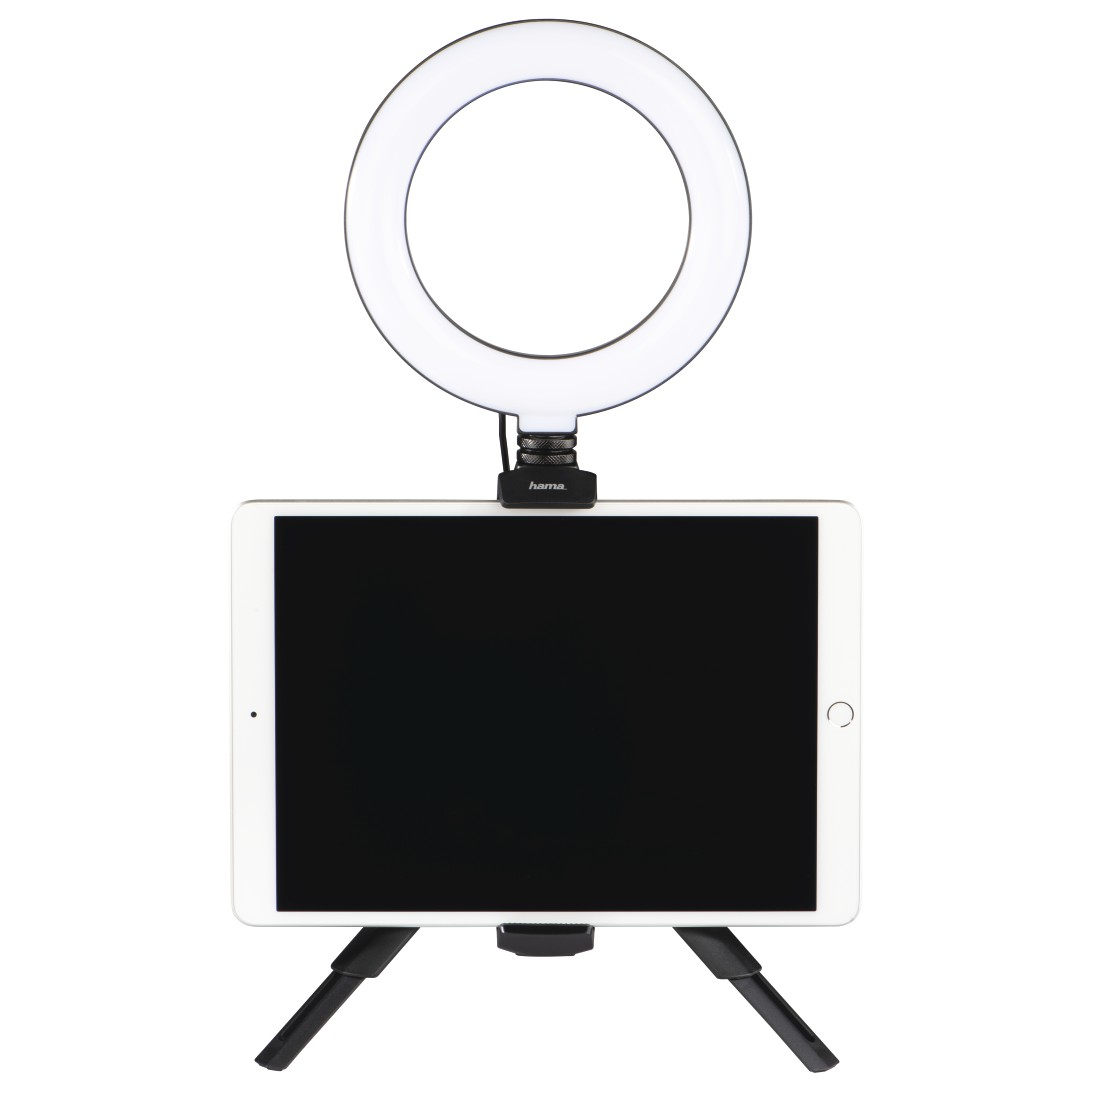 "awx3 High-Res Appliance 3 - Hama, ""SpotLight Work Area 67"" LED Ring Light, Set for Smartphone and Tablet"